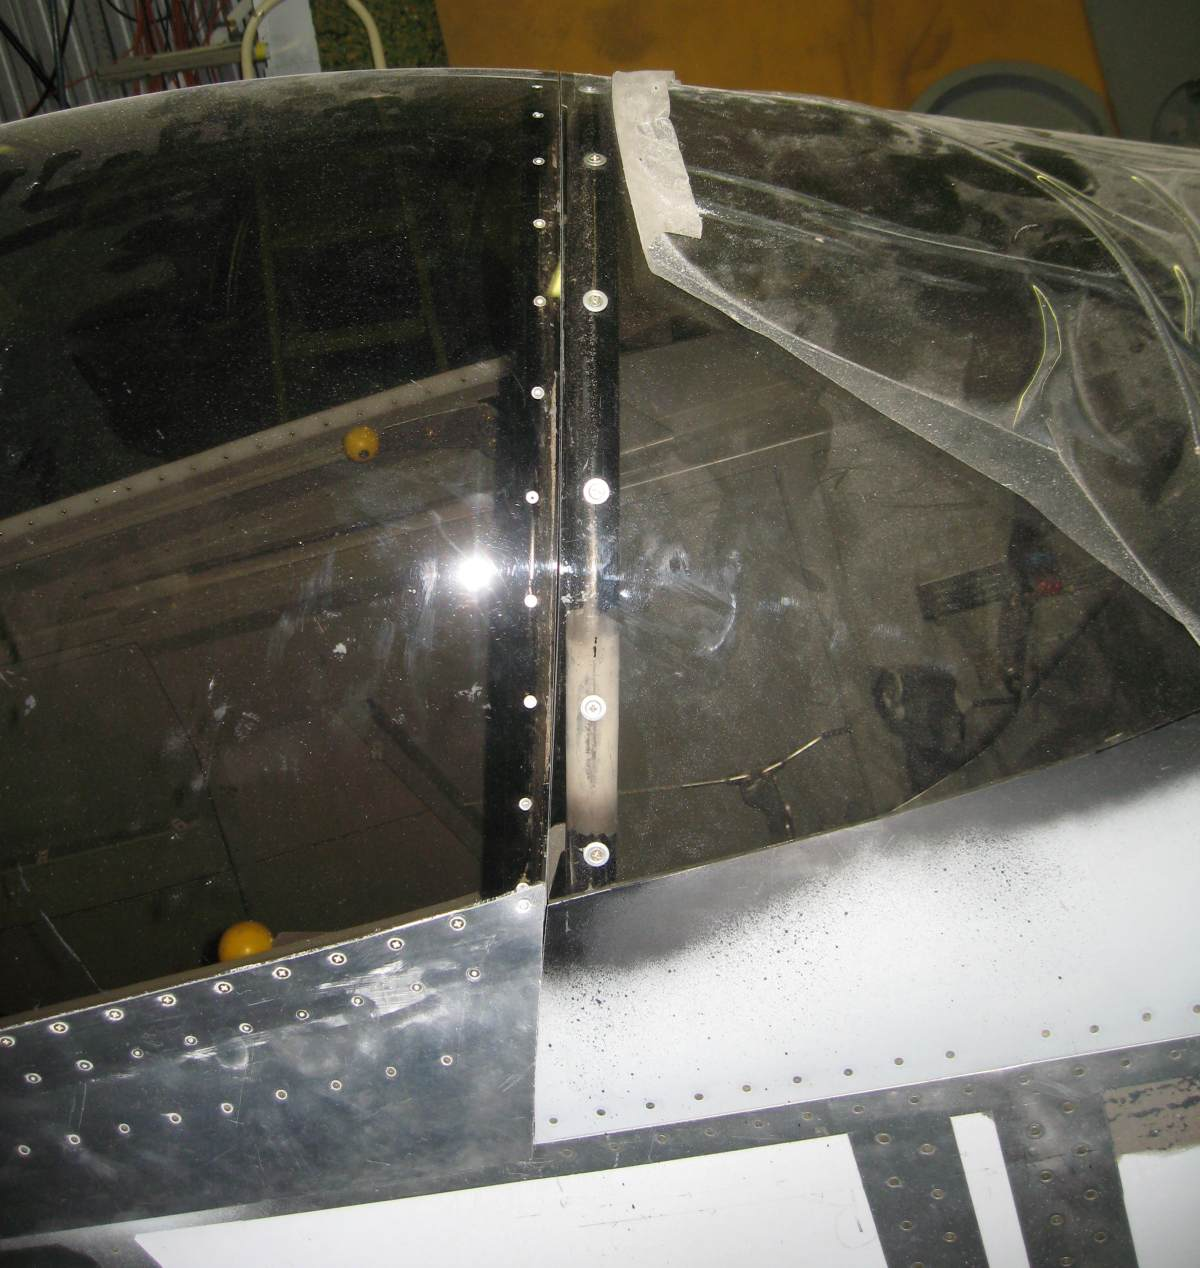 Canopy to Windshield Gap